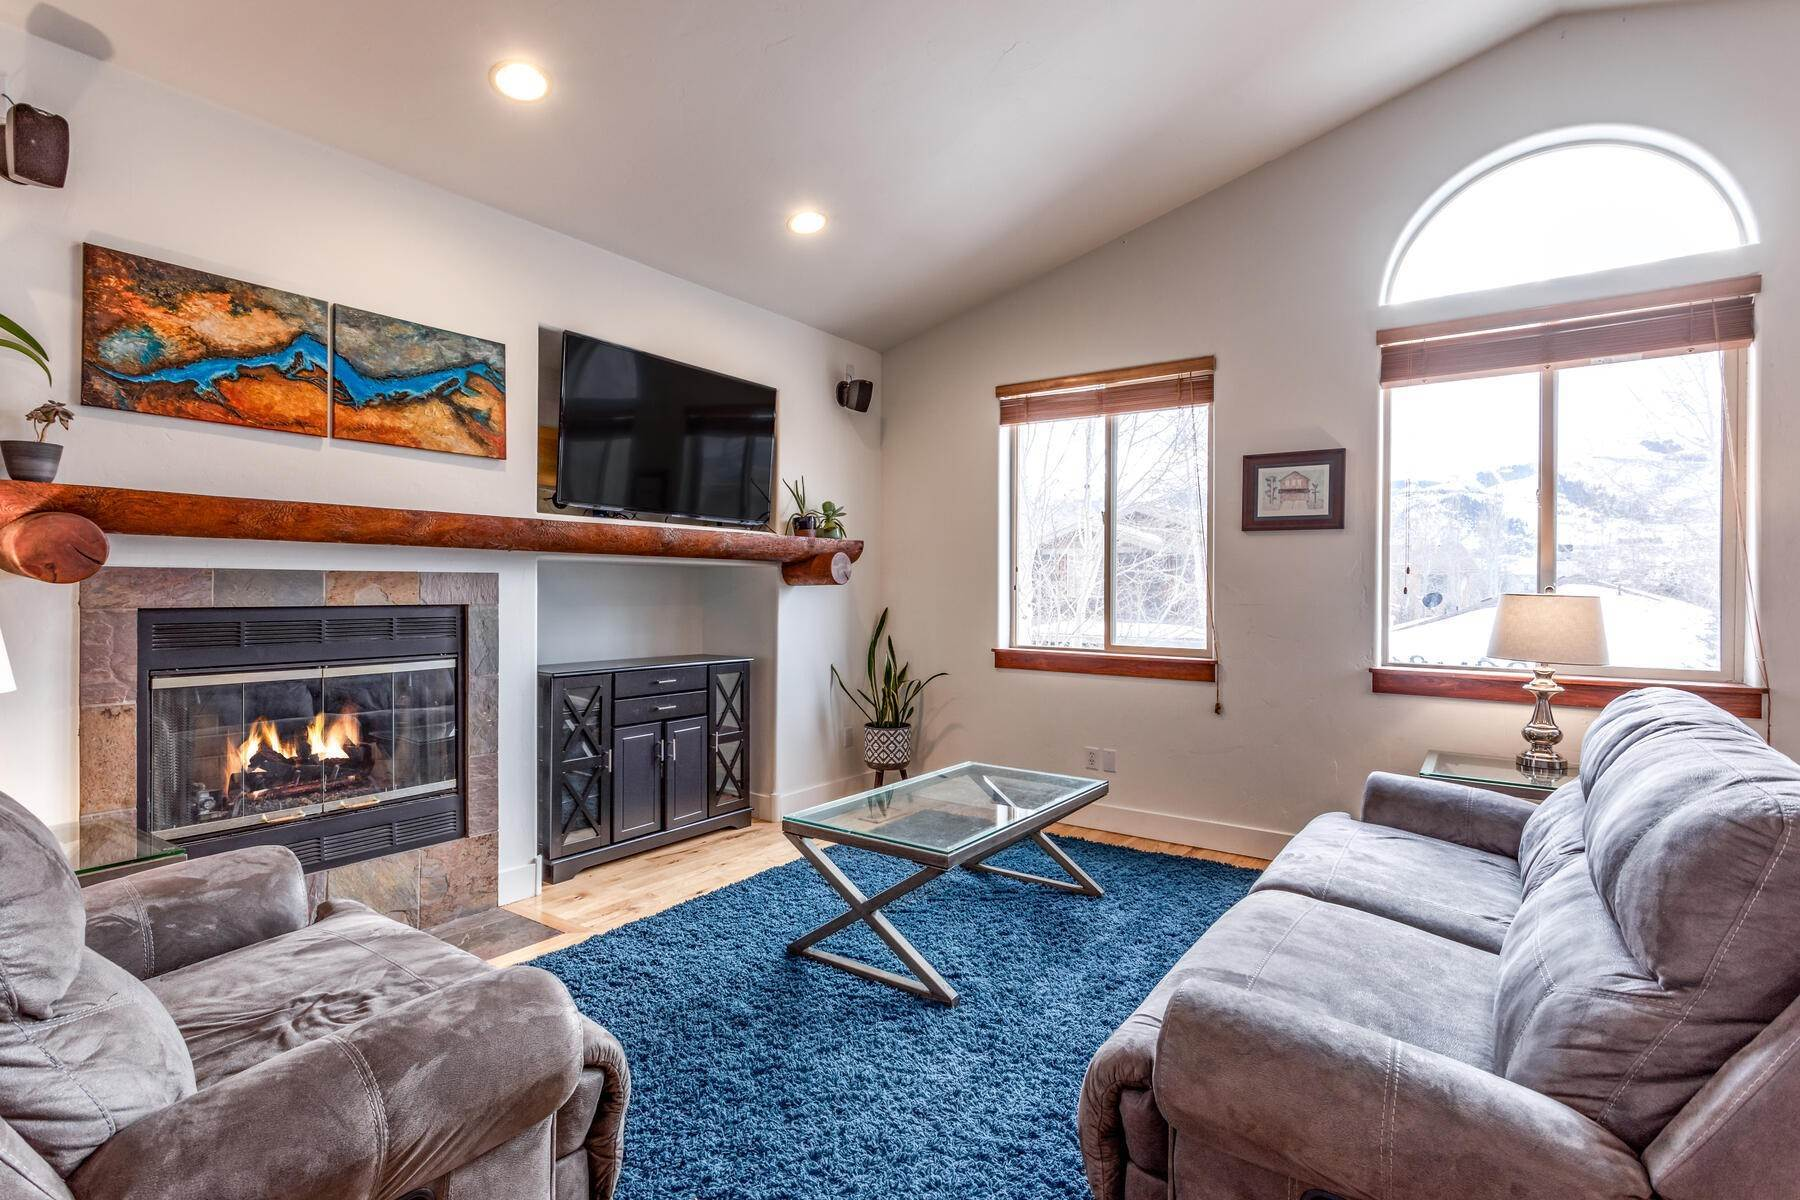 Single Family Homes for Sale at Ski Run Views from One of Park City's Best Locations 1110 Station Loop Rd Park City, Utah 84098 United States